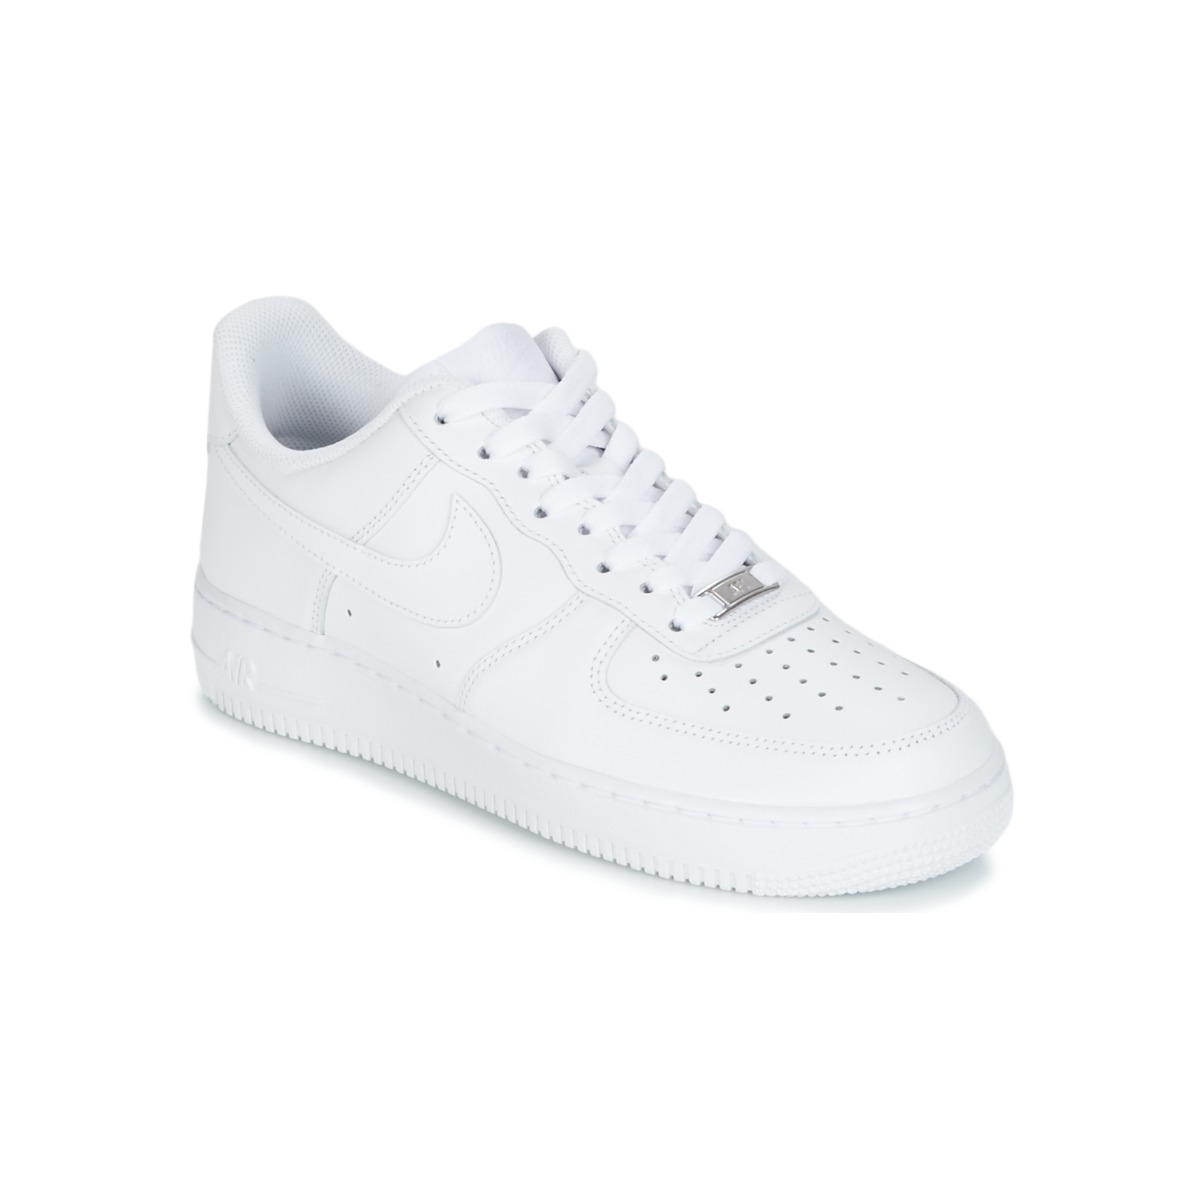 3c7f66ef2ac Shoes Χαμηλά Sneakers Nike air force - Δωρεάν Αποστολή | Spartoo.gr